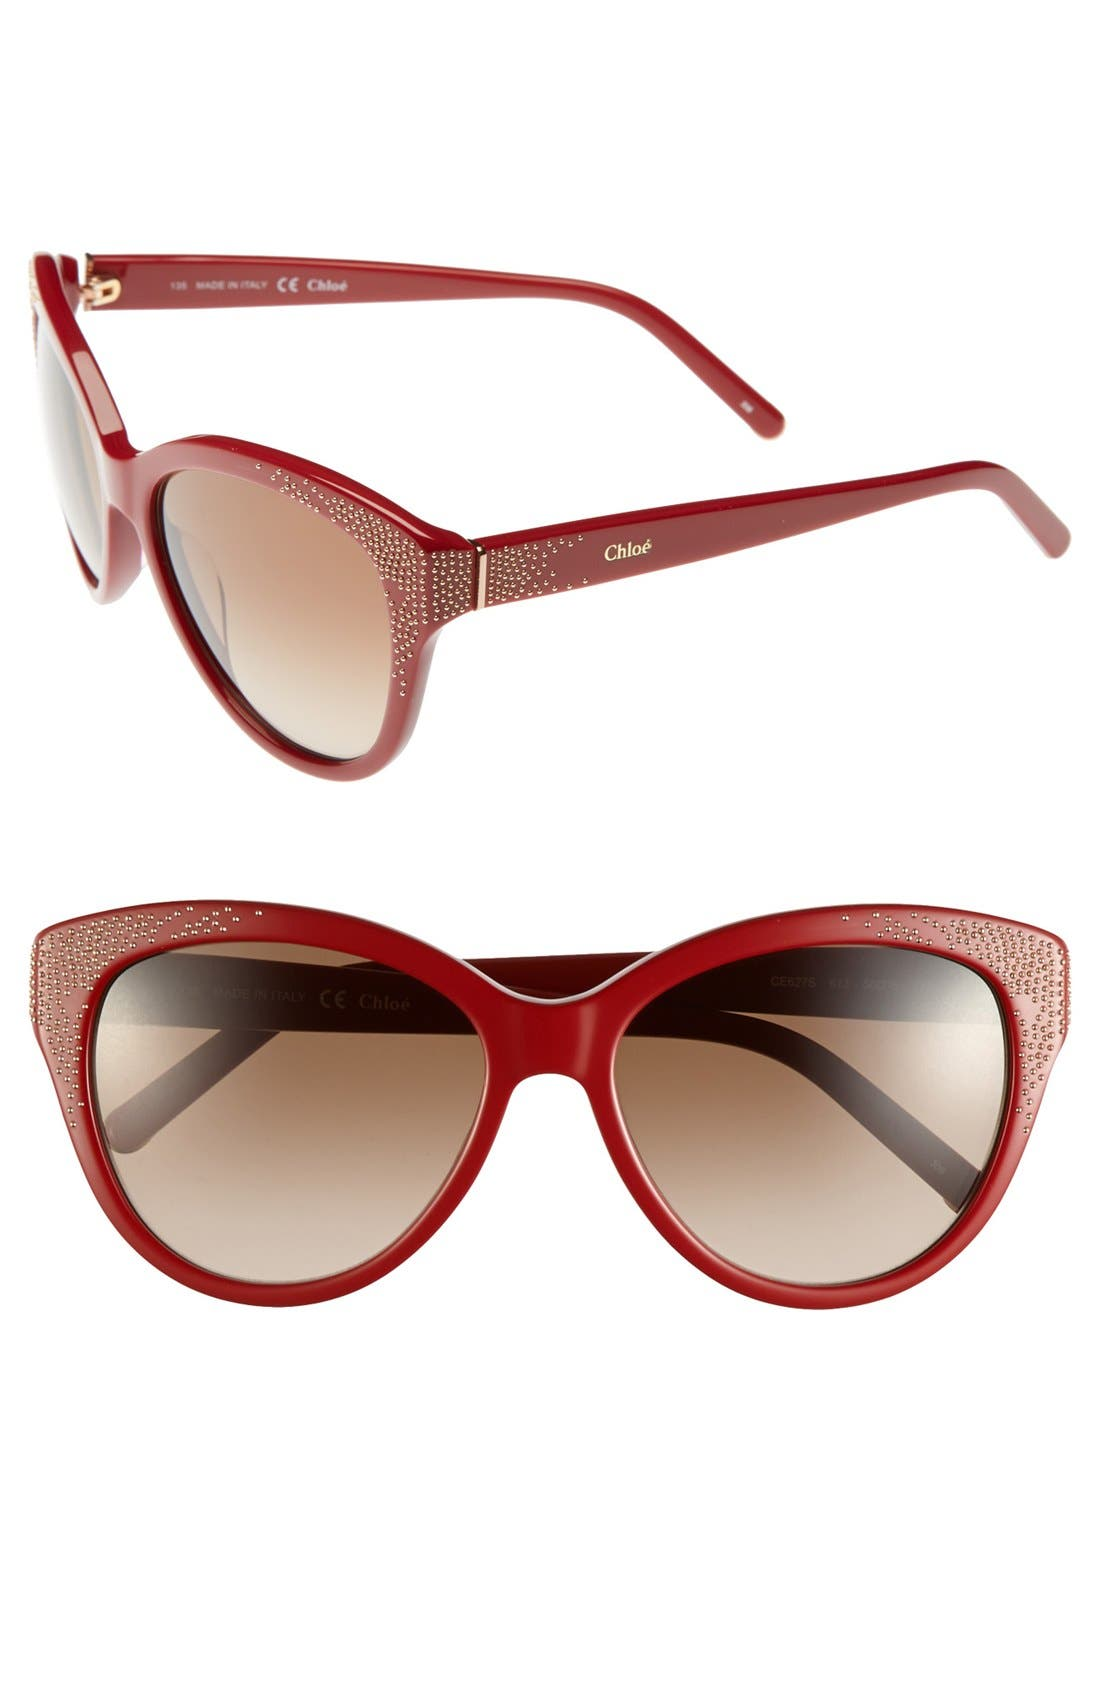 Main Image - Chloé 'Suzanna' 56mm Cat Eye Sunglasses